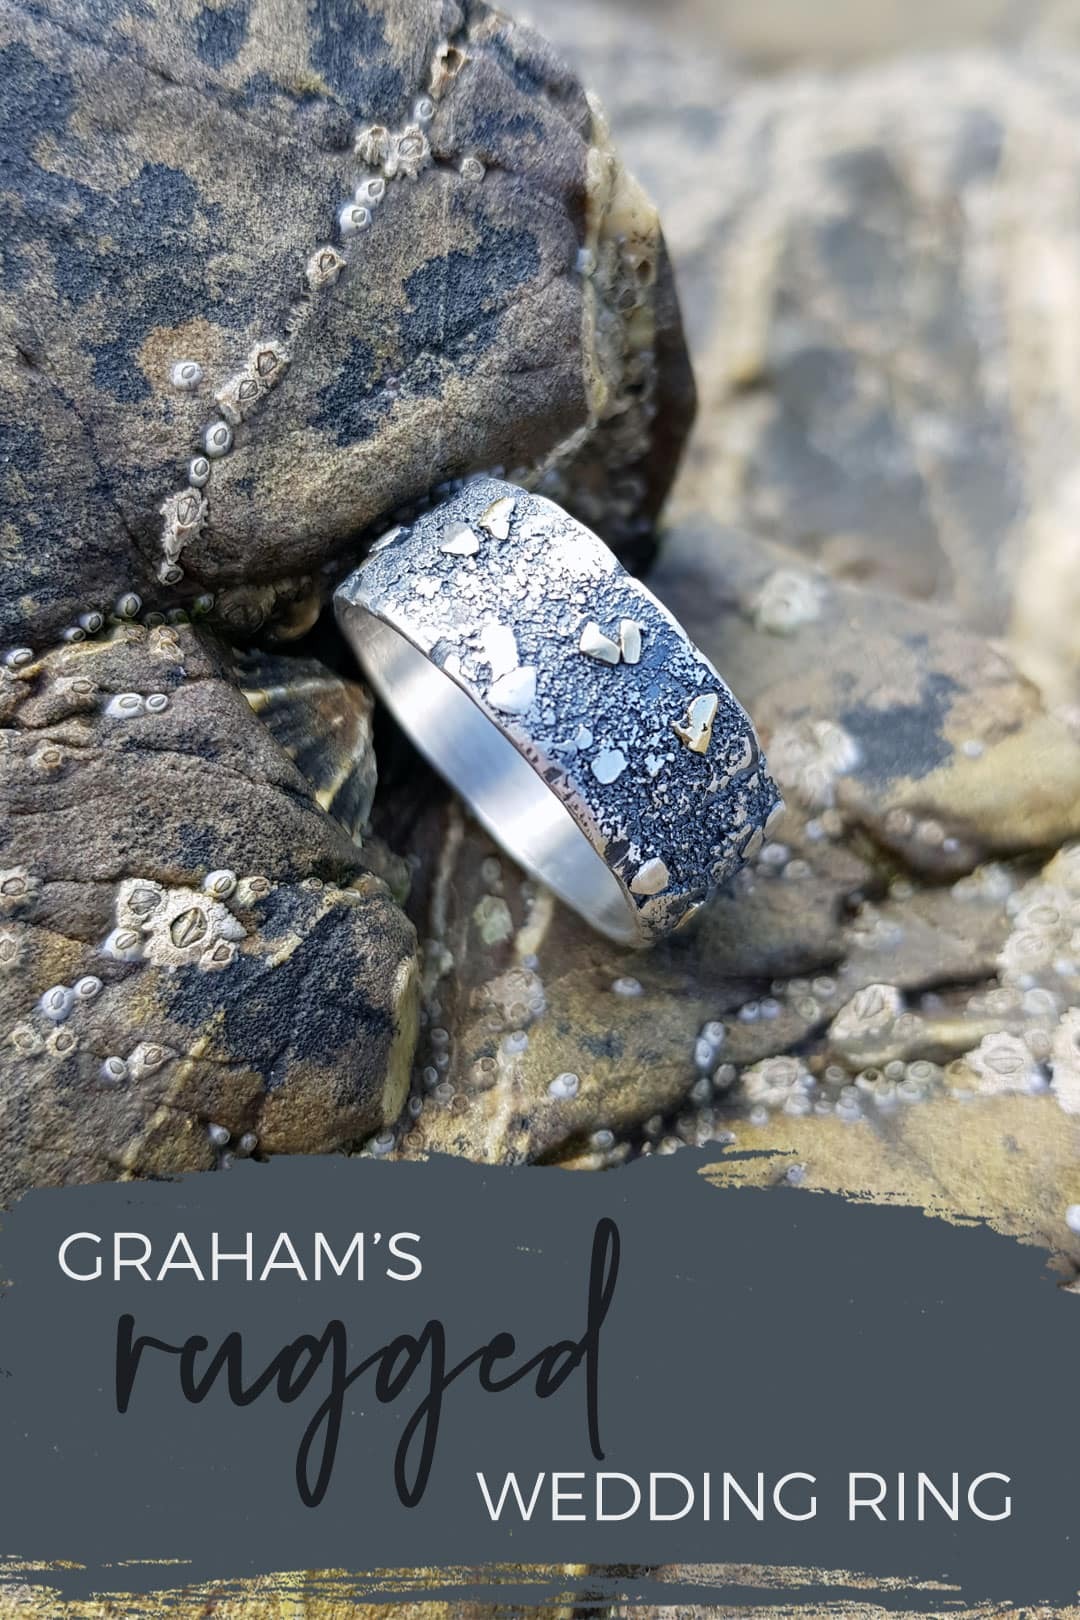 Graham's silver and gold Rugged wedding ring commission